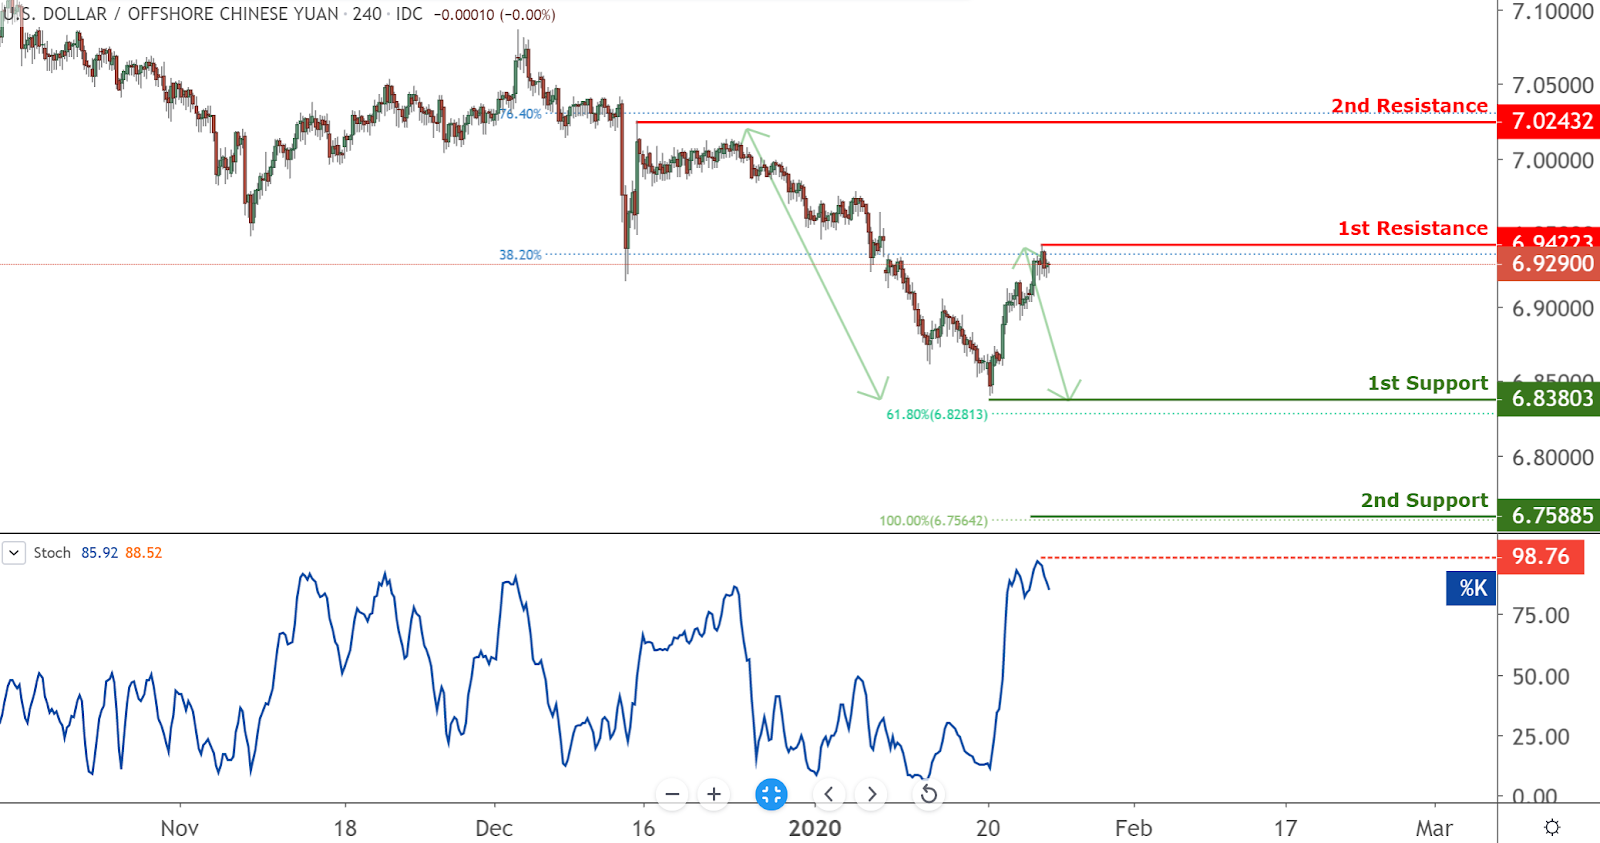 USDCNH Chart, Source: TradingView.com